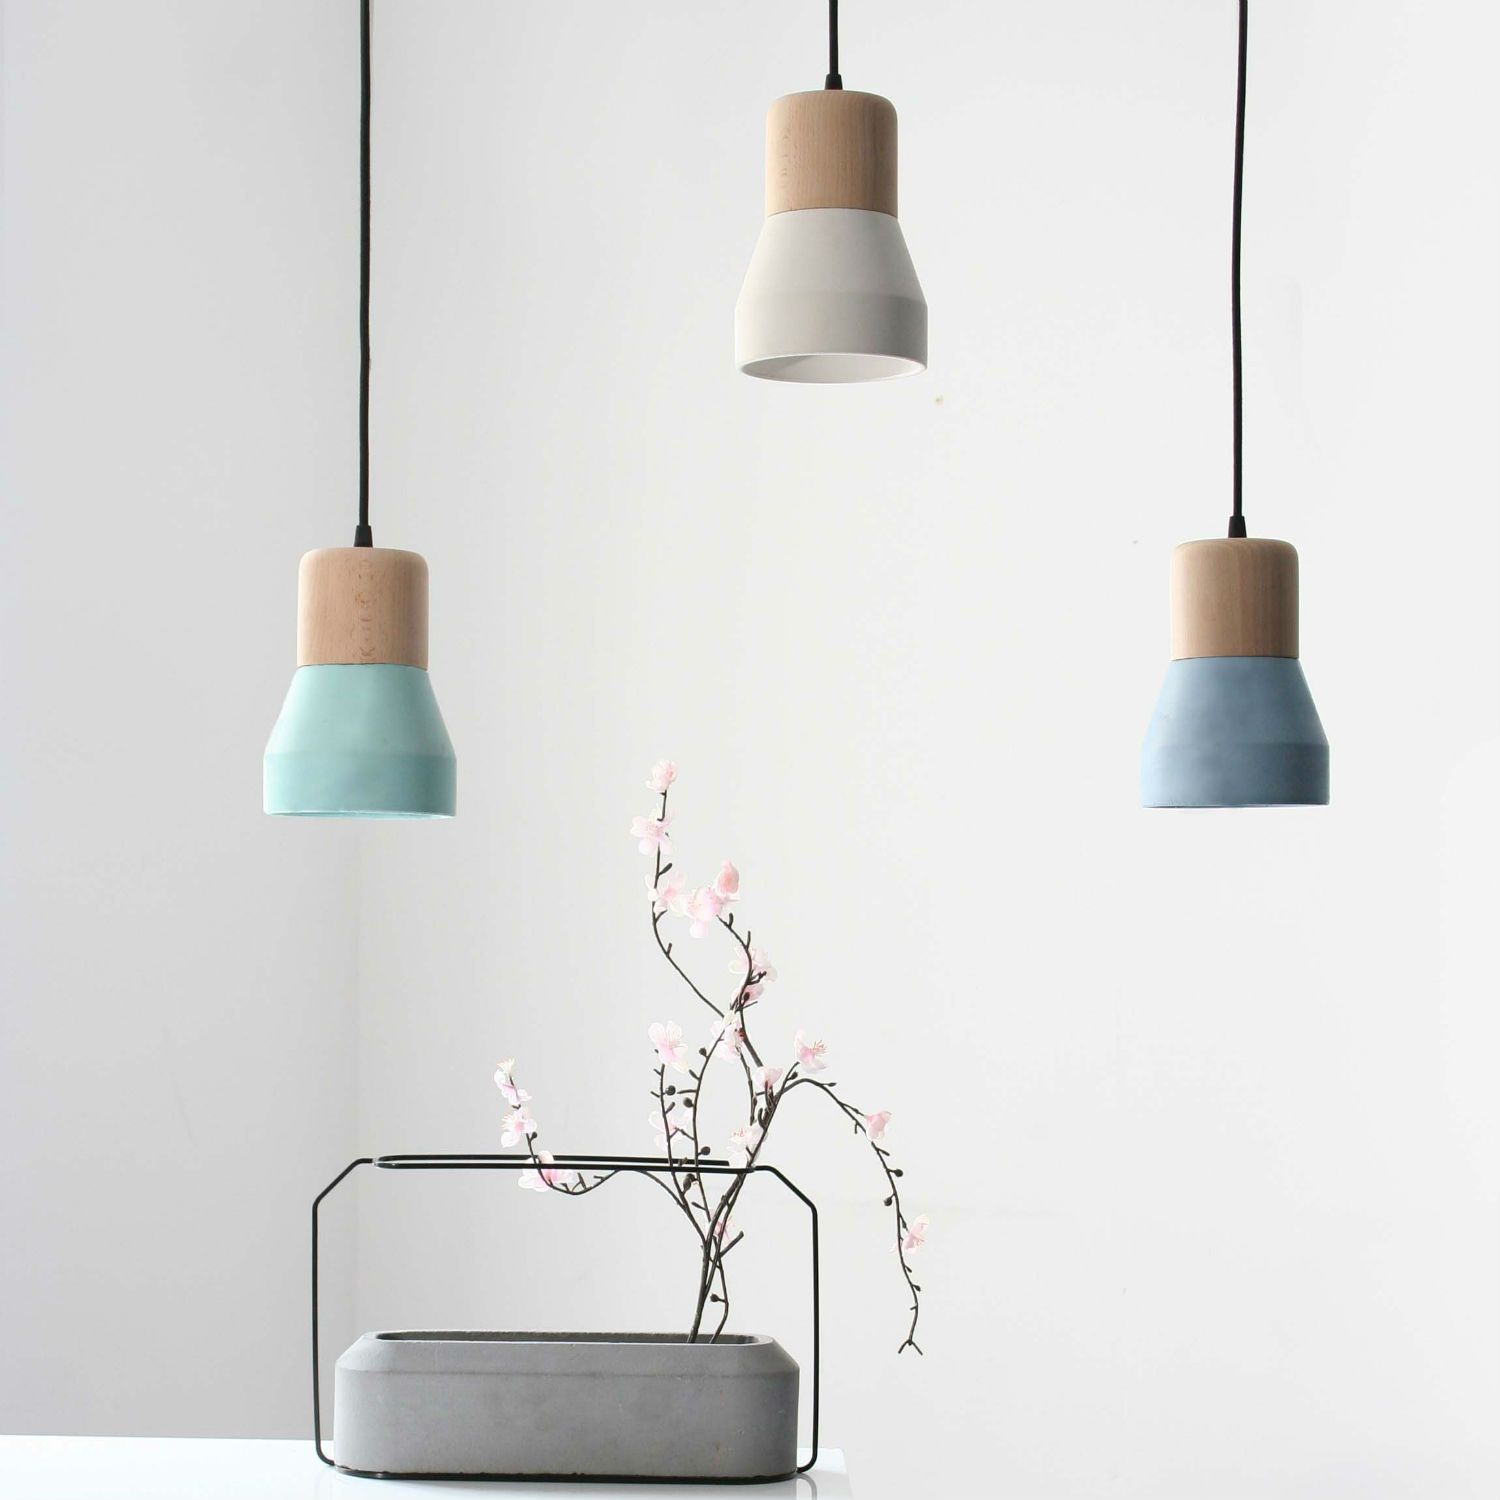 Suspensions Scandinaves Suspensions Bois De Hêtre Béton Style Scandinave Design